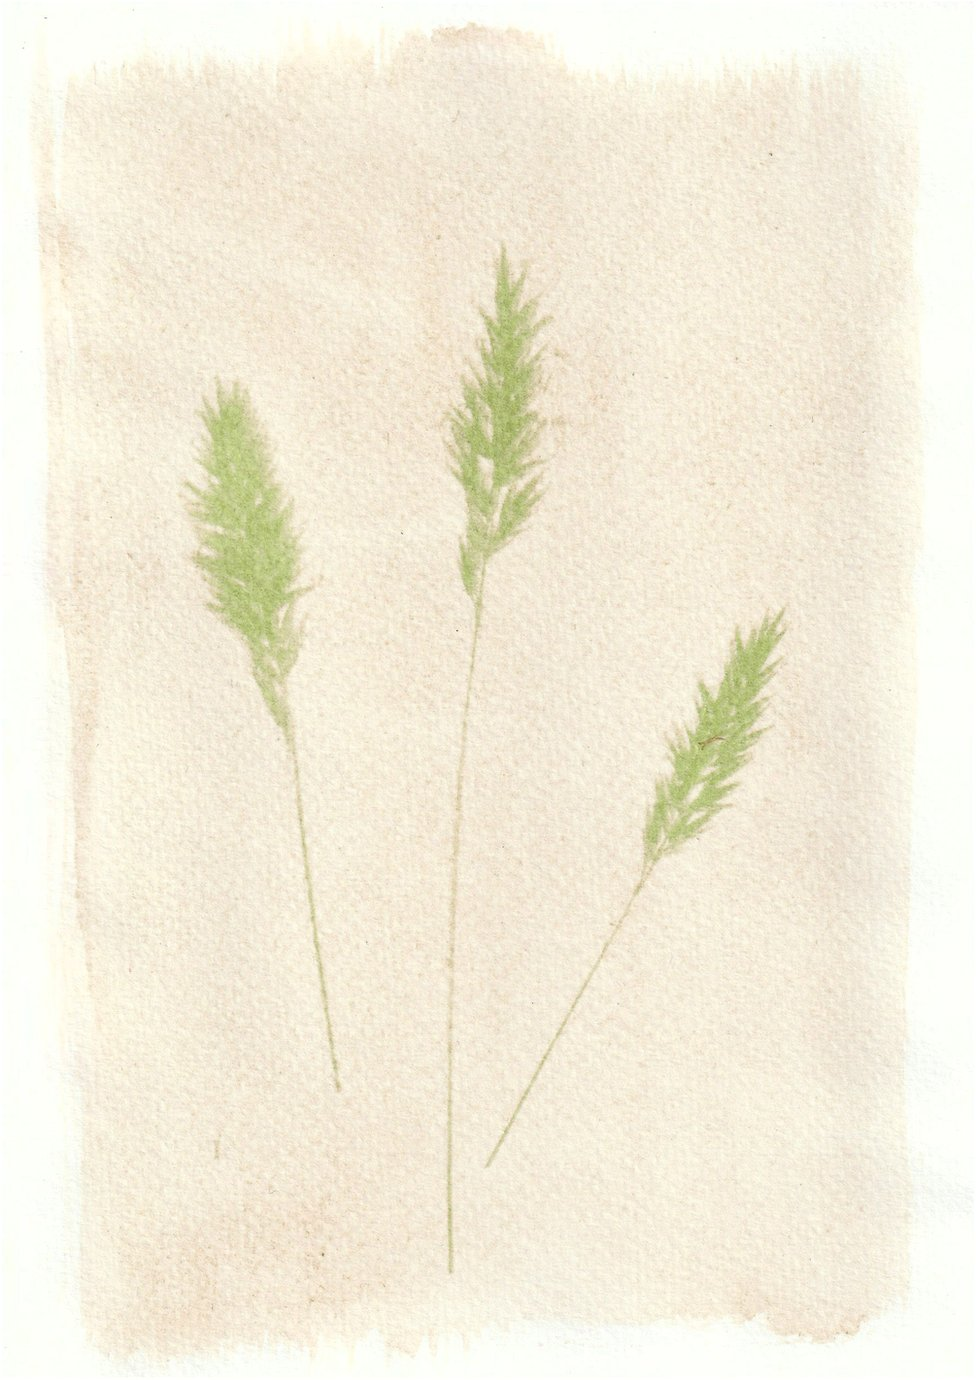 An anthotype print of three green pieces of wheat